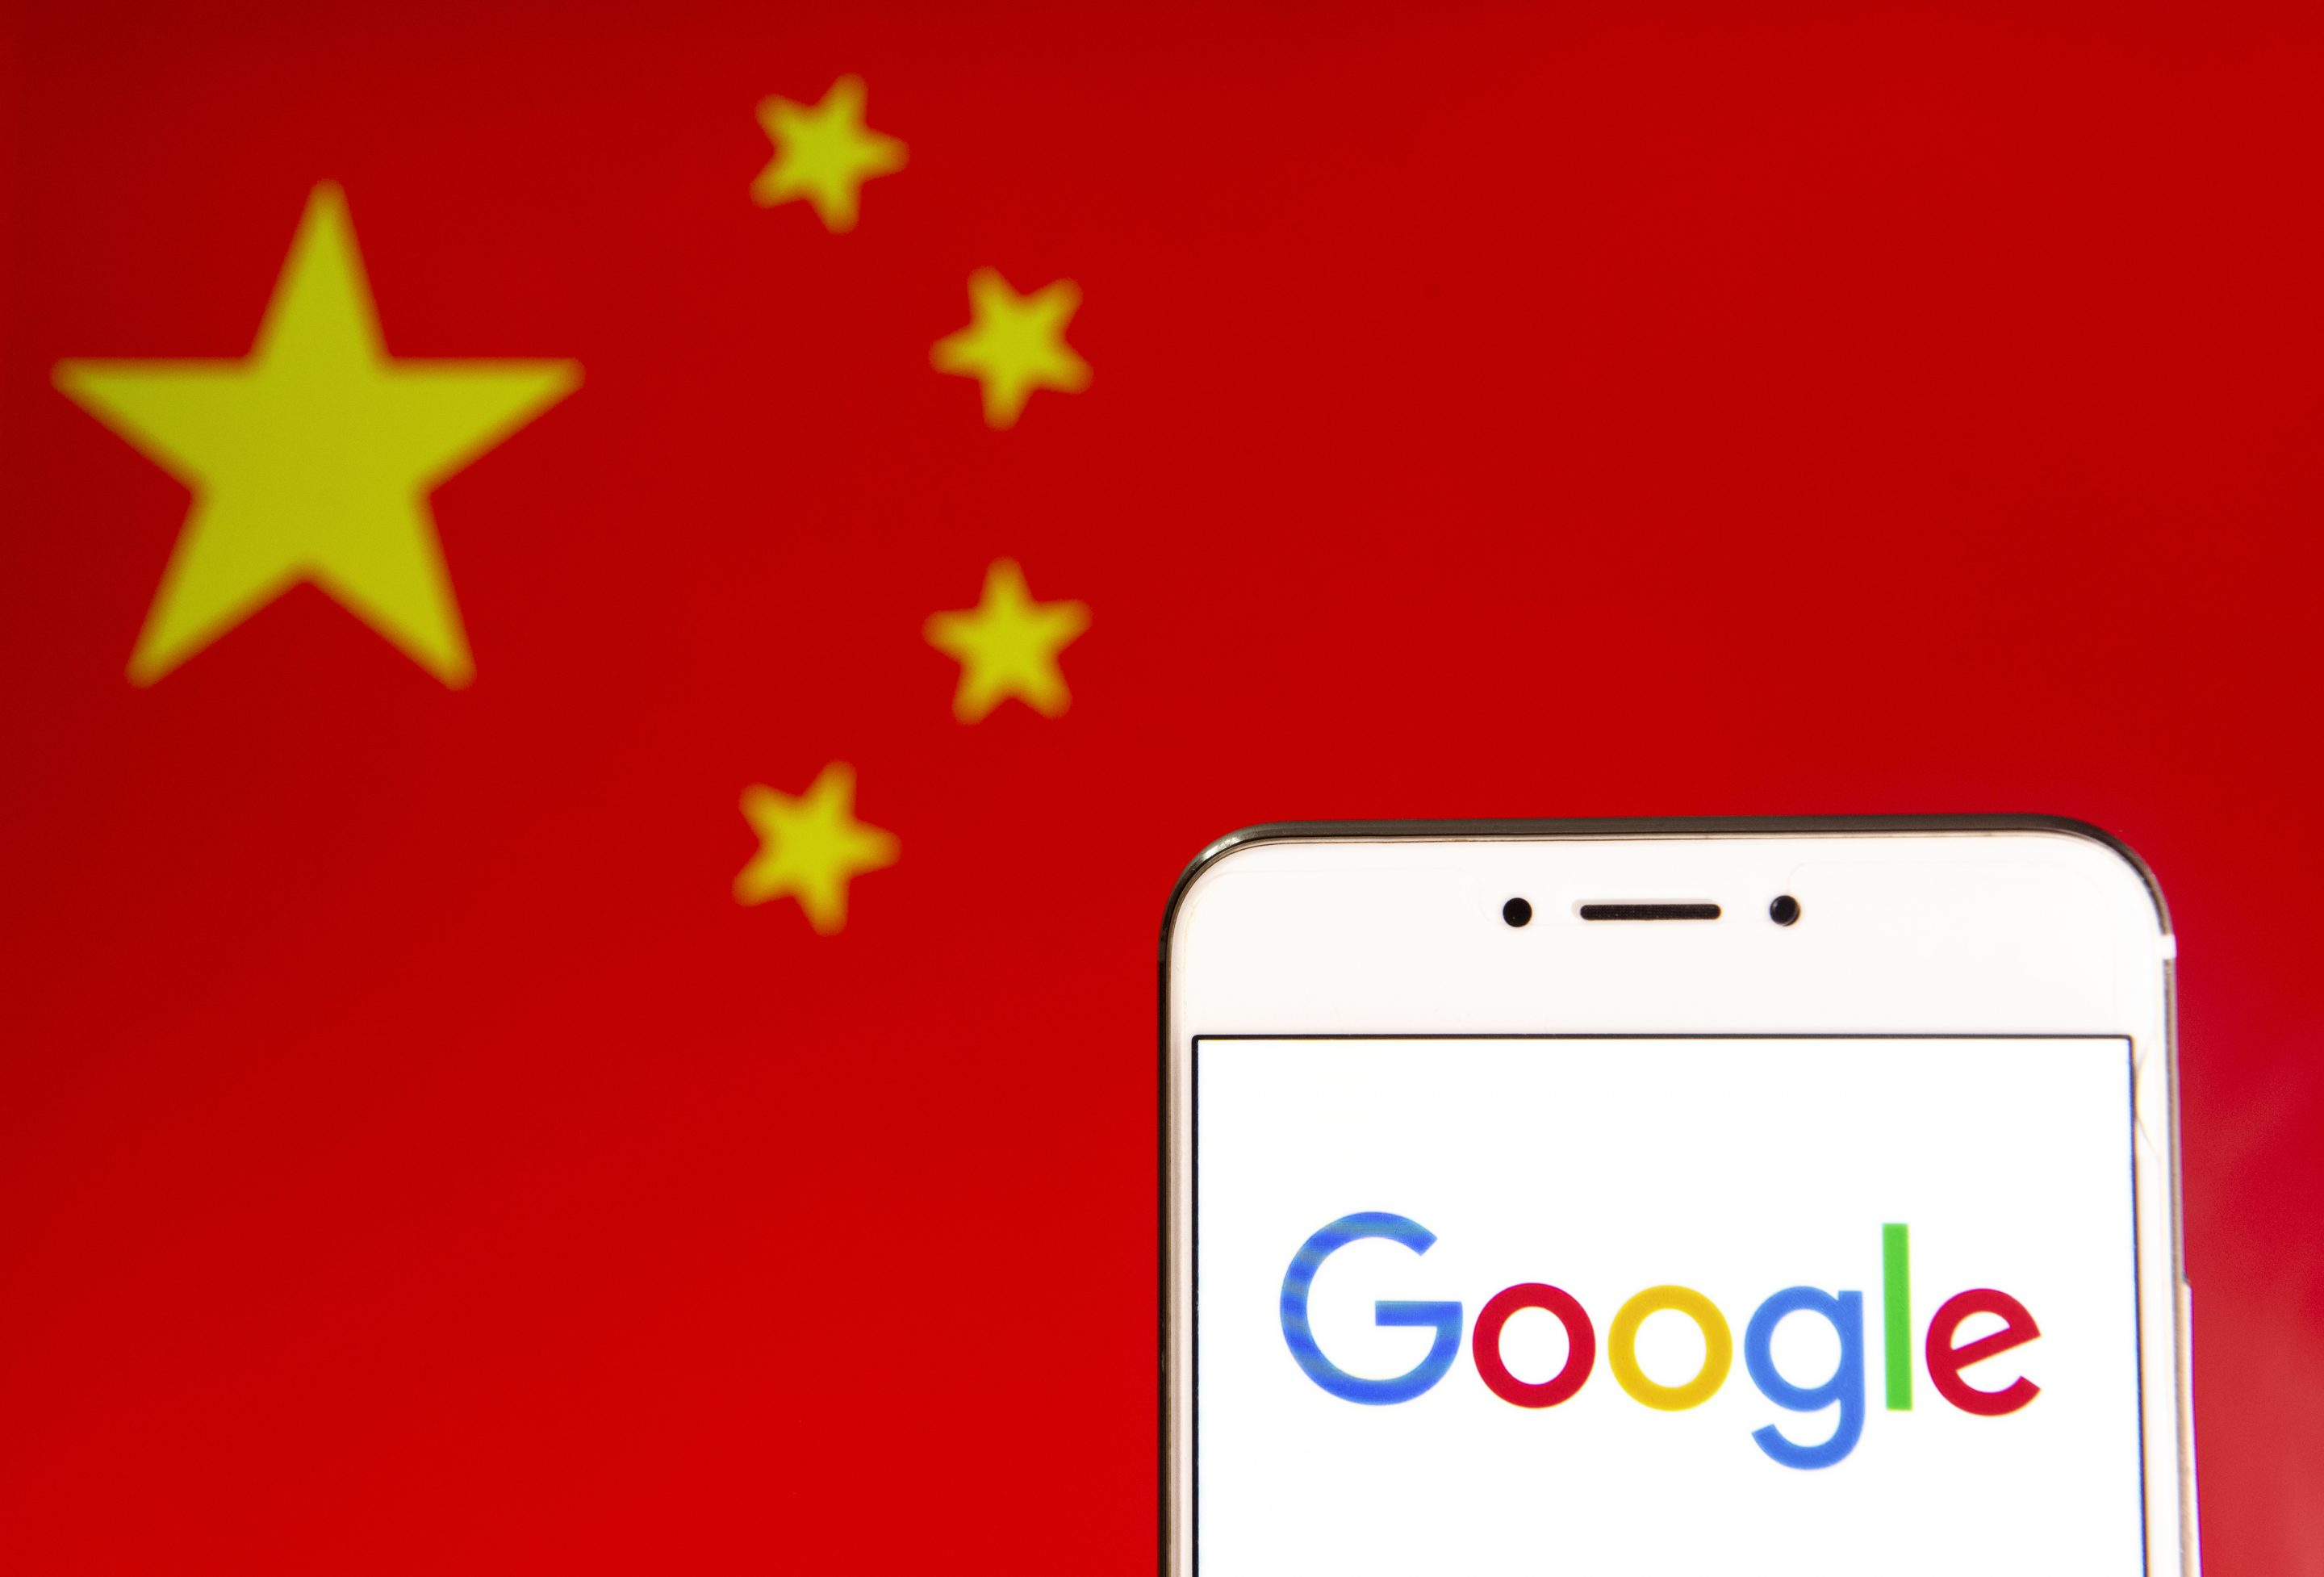 Alphabet has confirmed the termination of Project Dragonfly, Google's controversial, censored search engine for China.